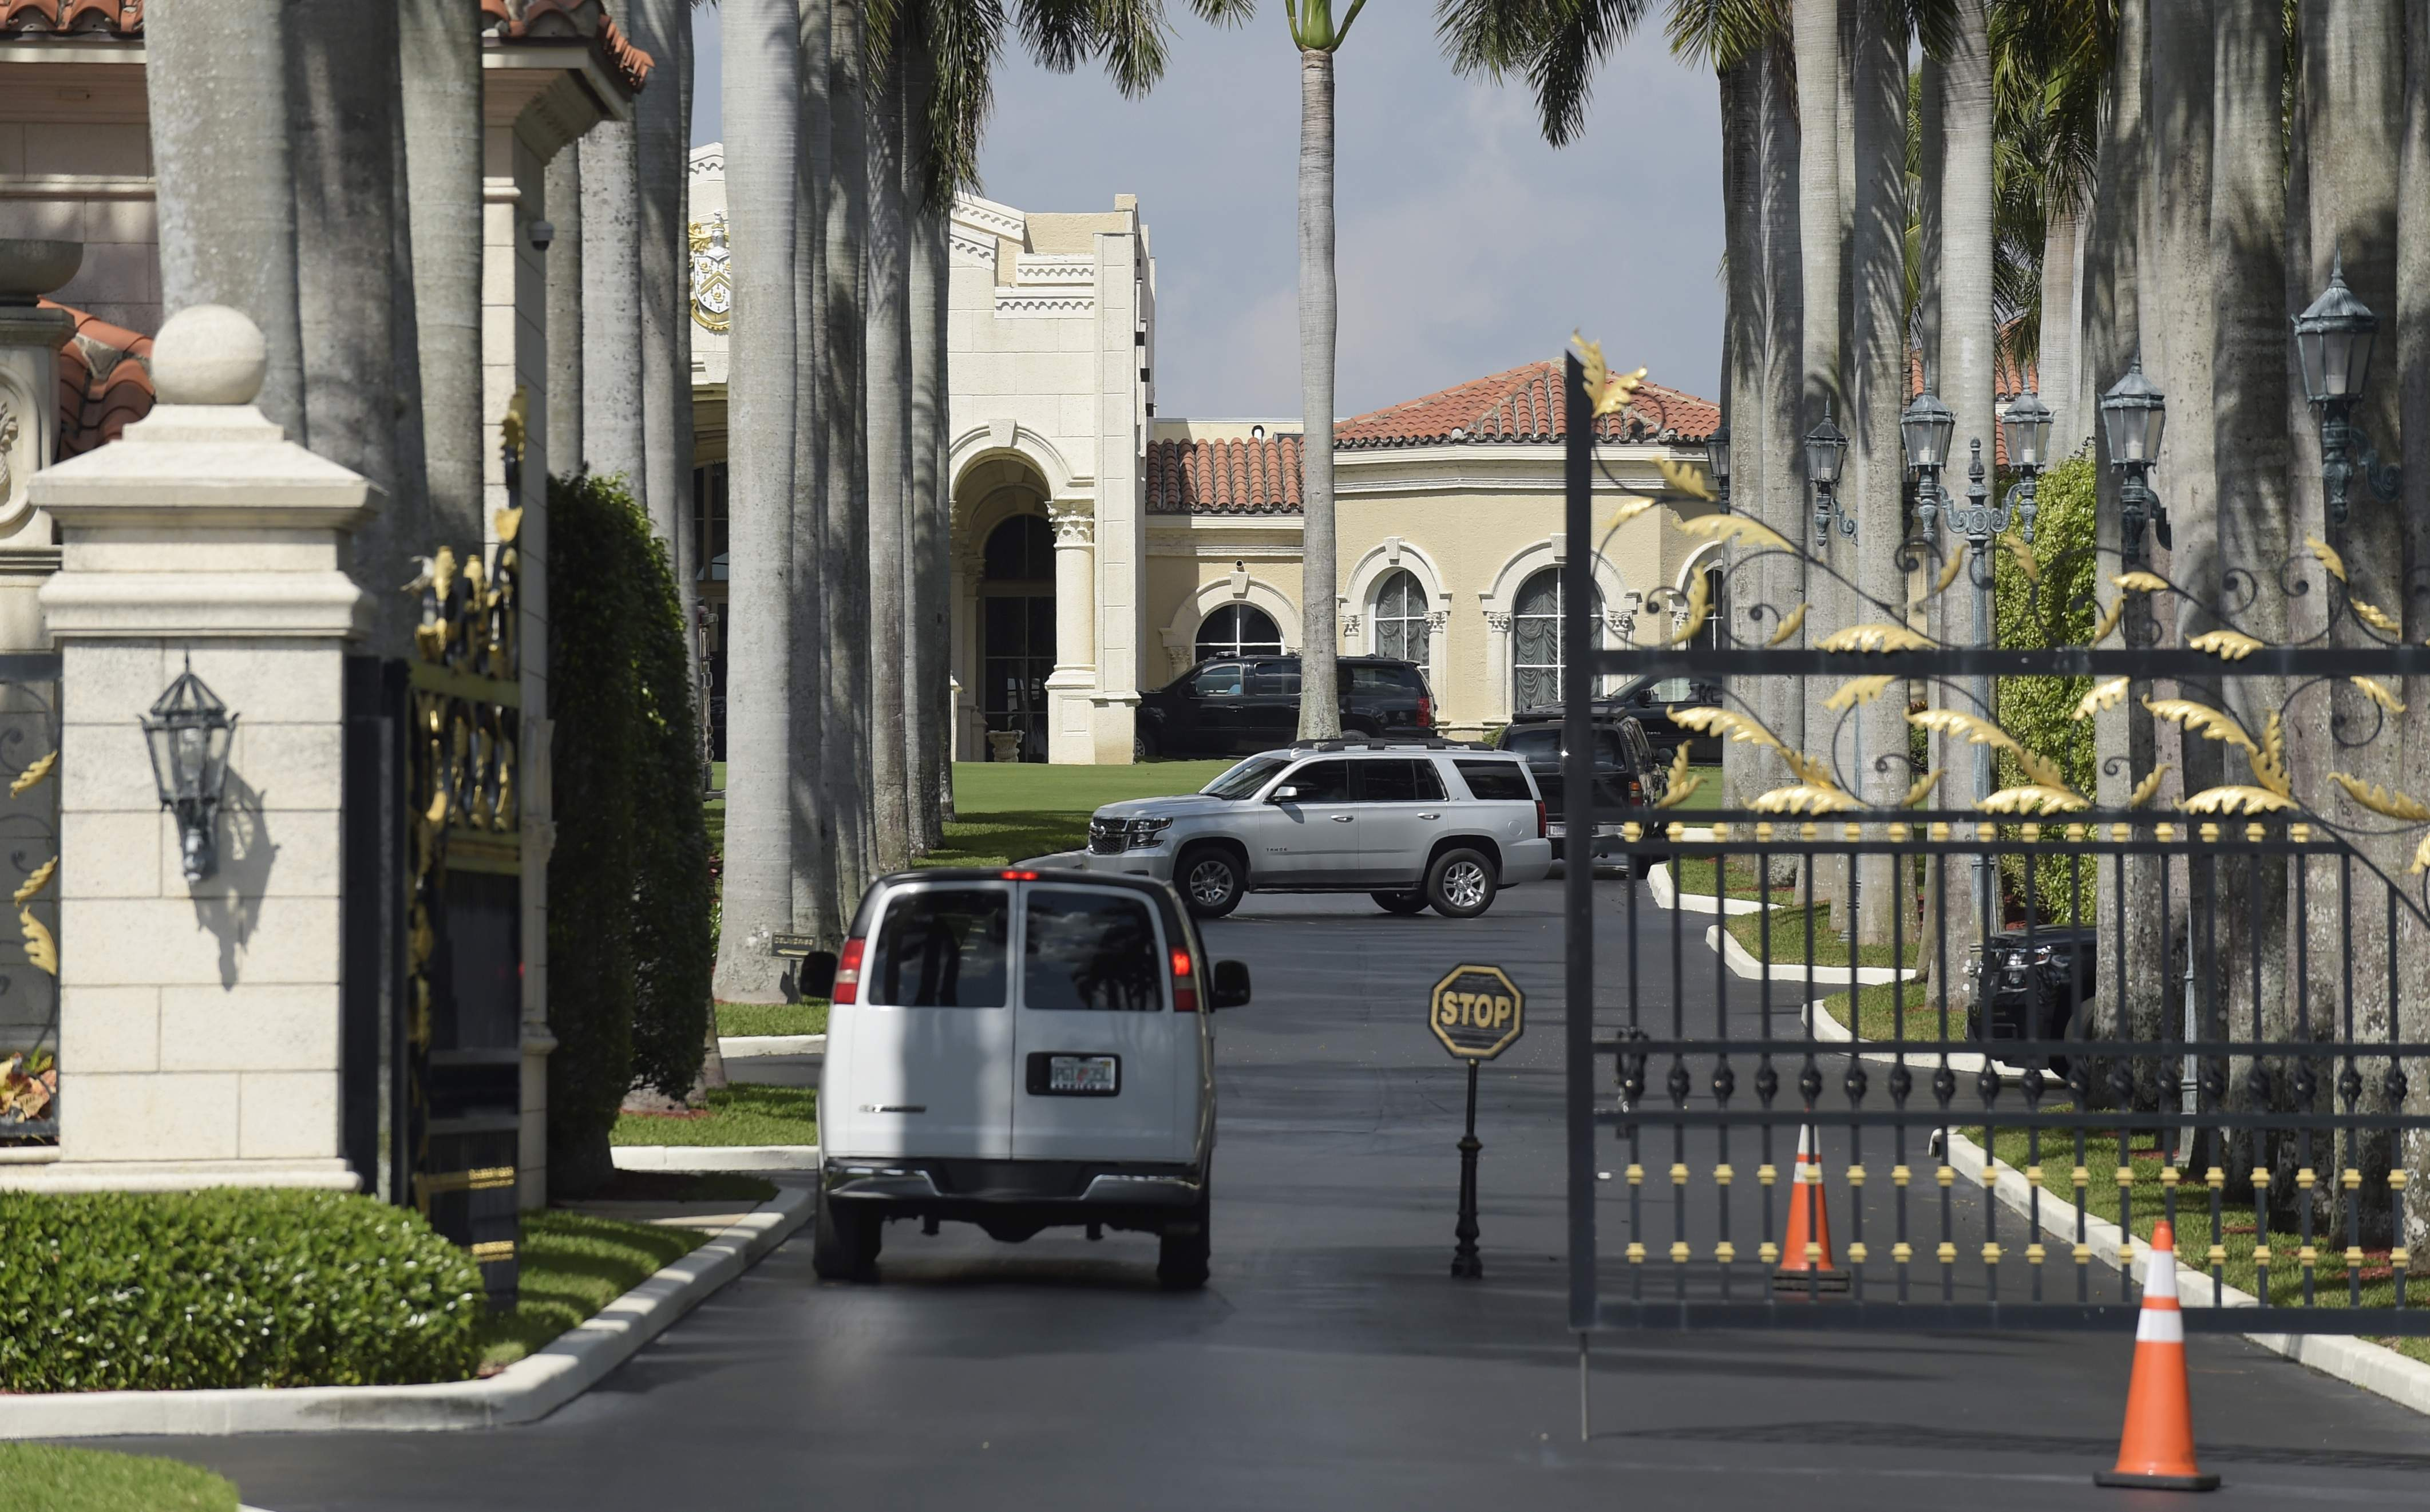 DAY 31 - in this Feb. 19, 2017, file photo, a vehicle stops at the gate of the Trump International Golf Club in West Palm Beach, Fla., while President Donald Trump is at the club. The president was in Mar-a-Lago for the weekend and had no public events on his schedule and was not photographed on day 31. (AP Photo/Susan Walsh, file)